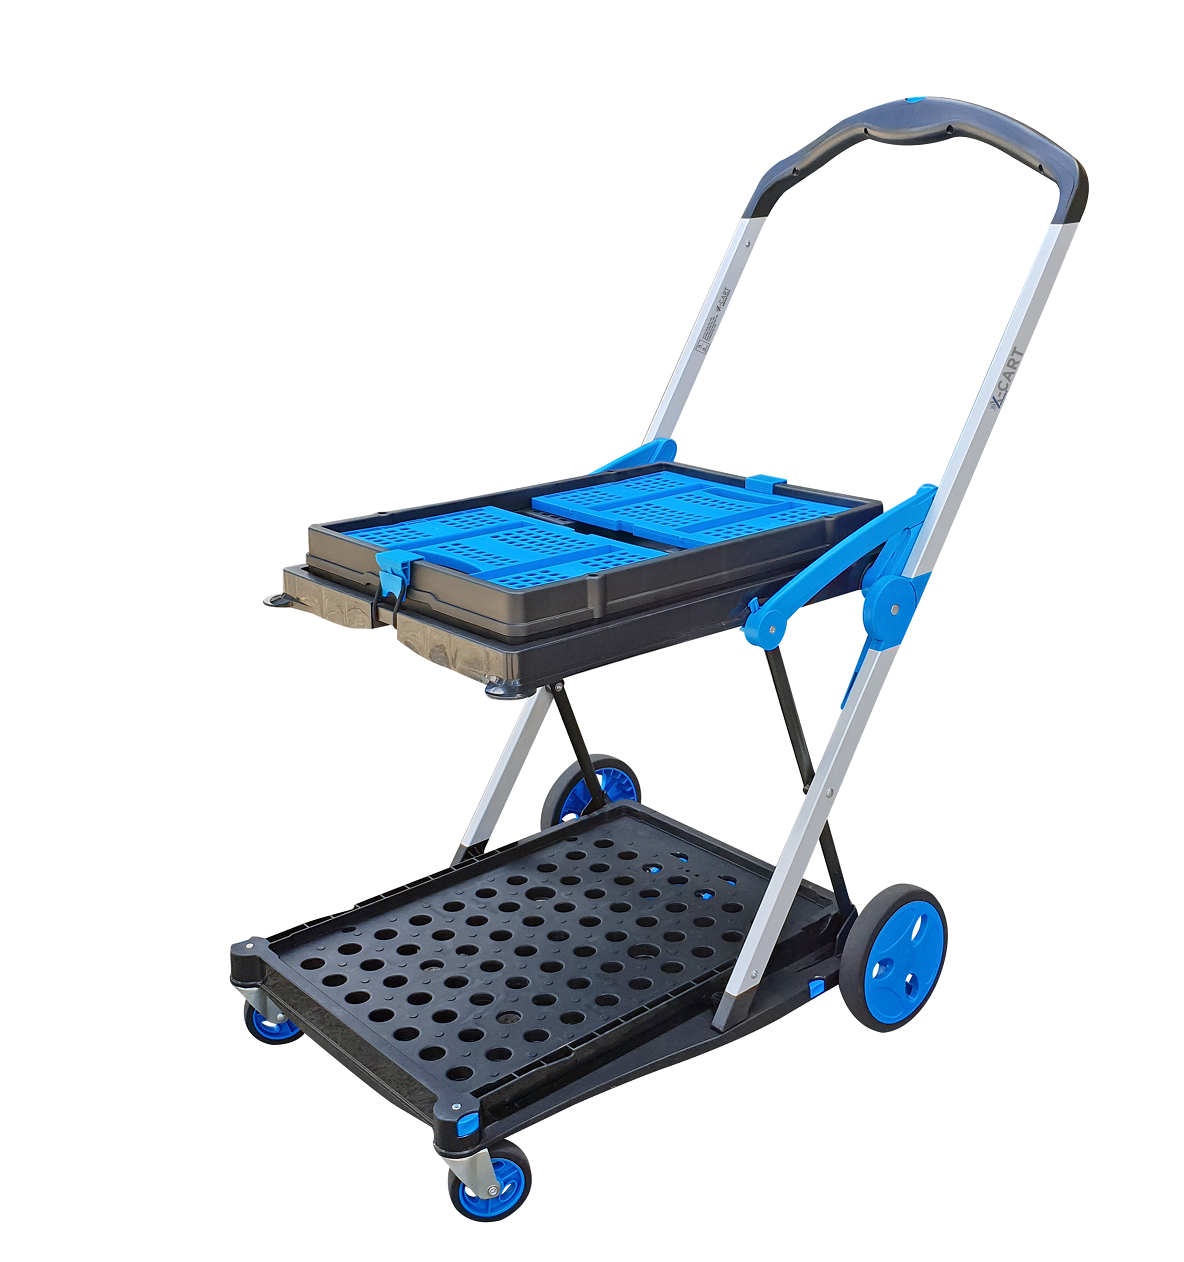 X-Cart With Basket Folded (1) reduced